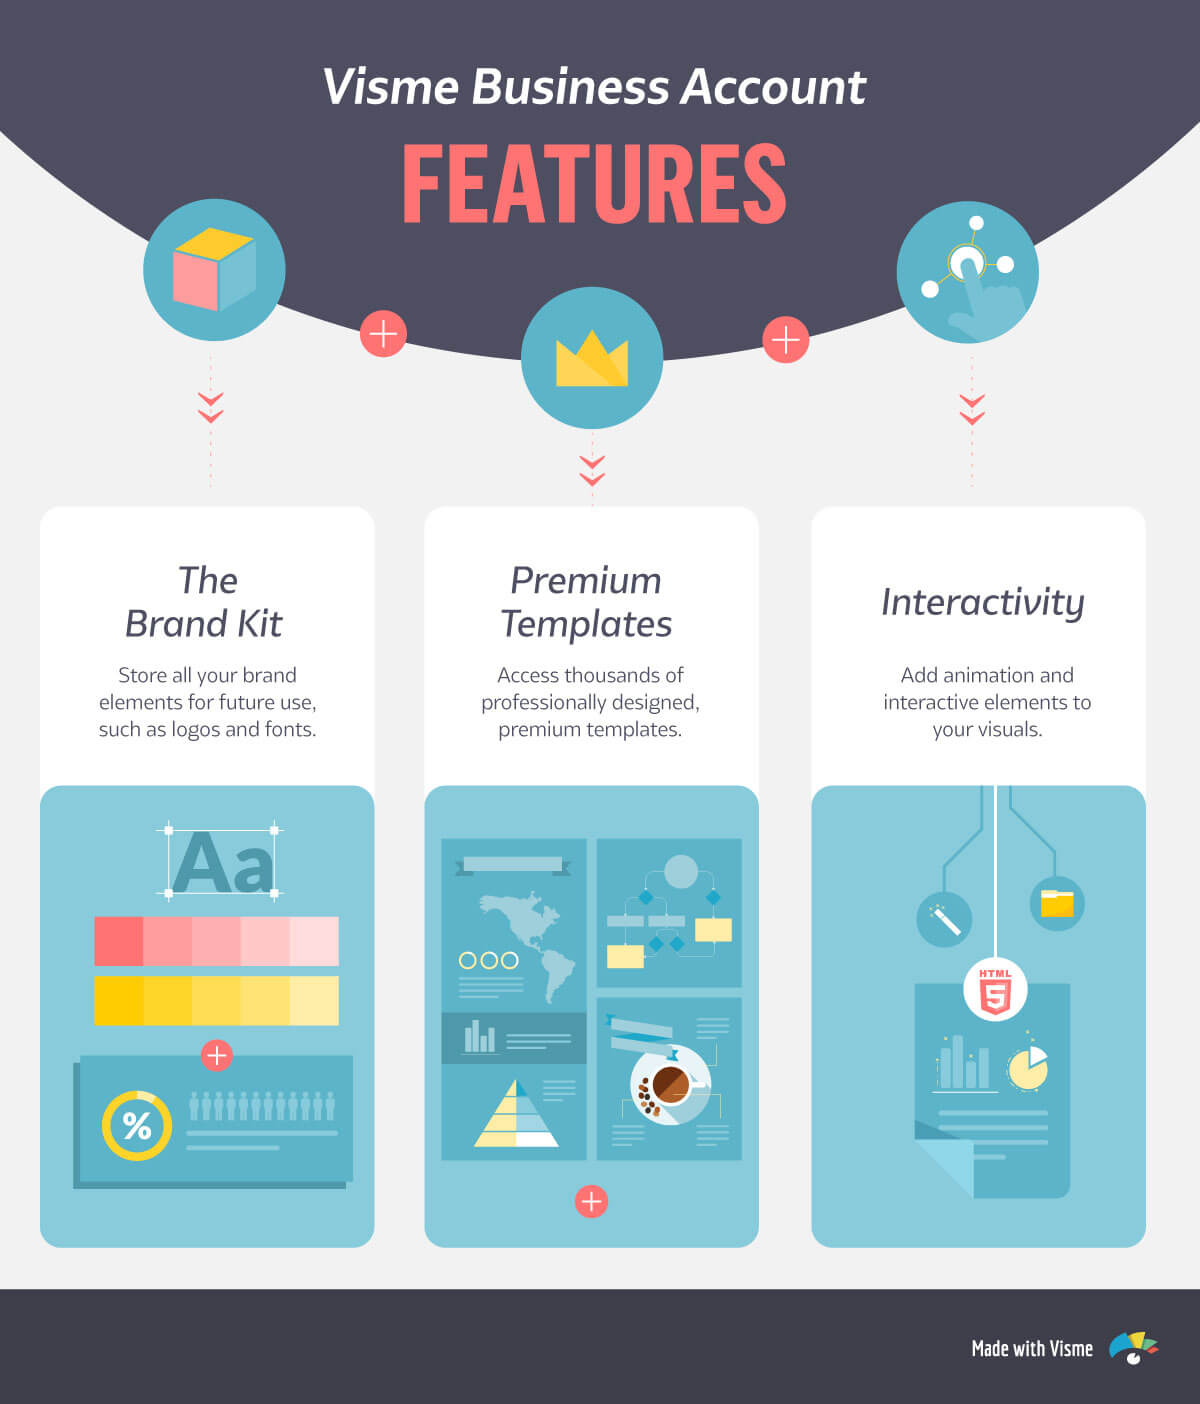 how to make an infographic - visme business account features